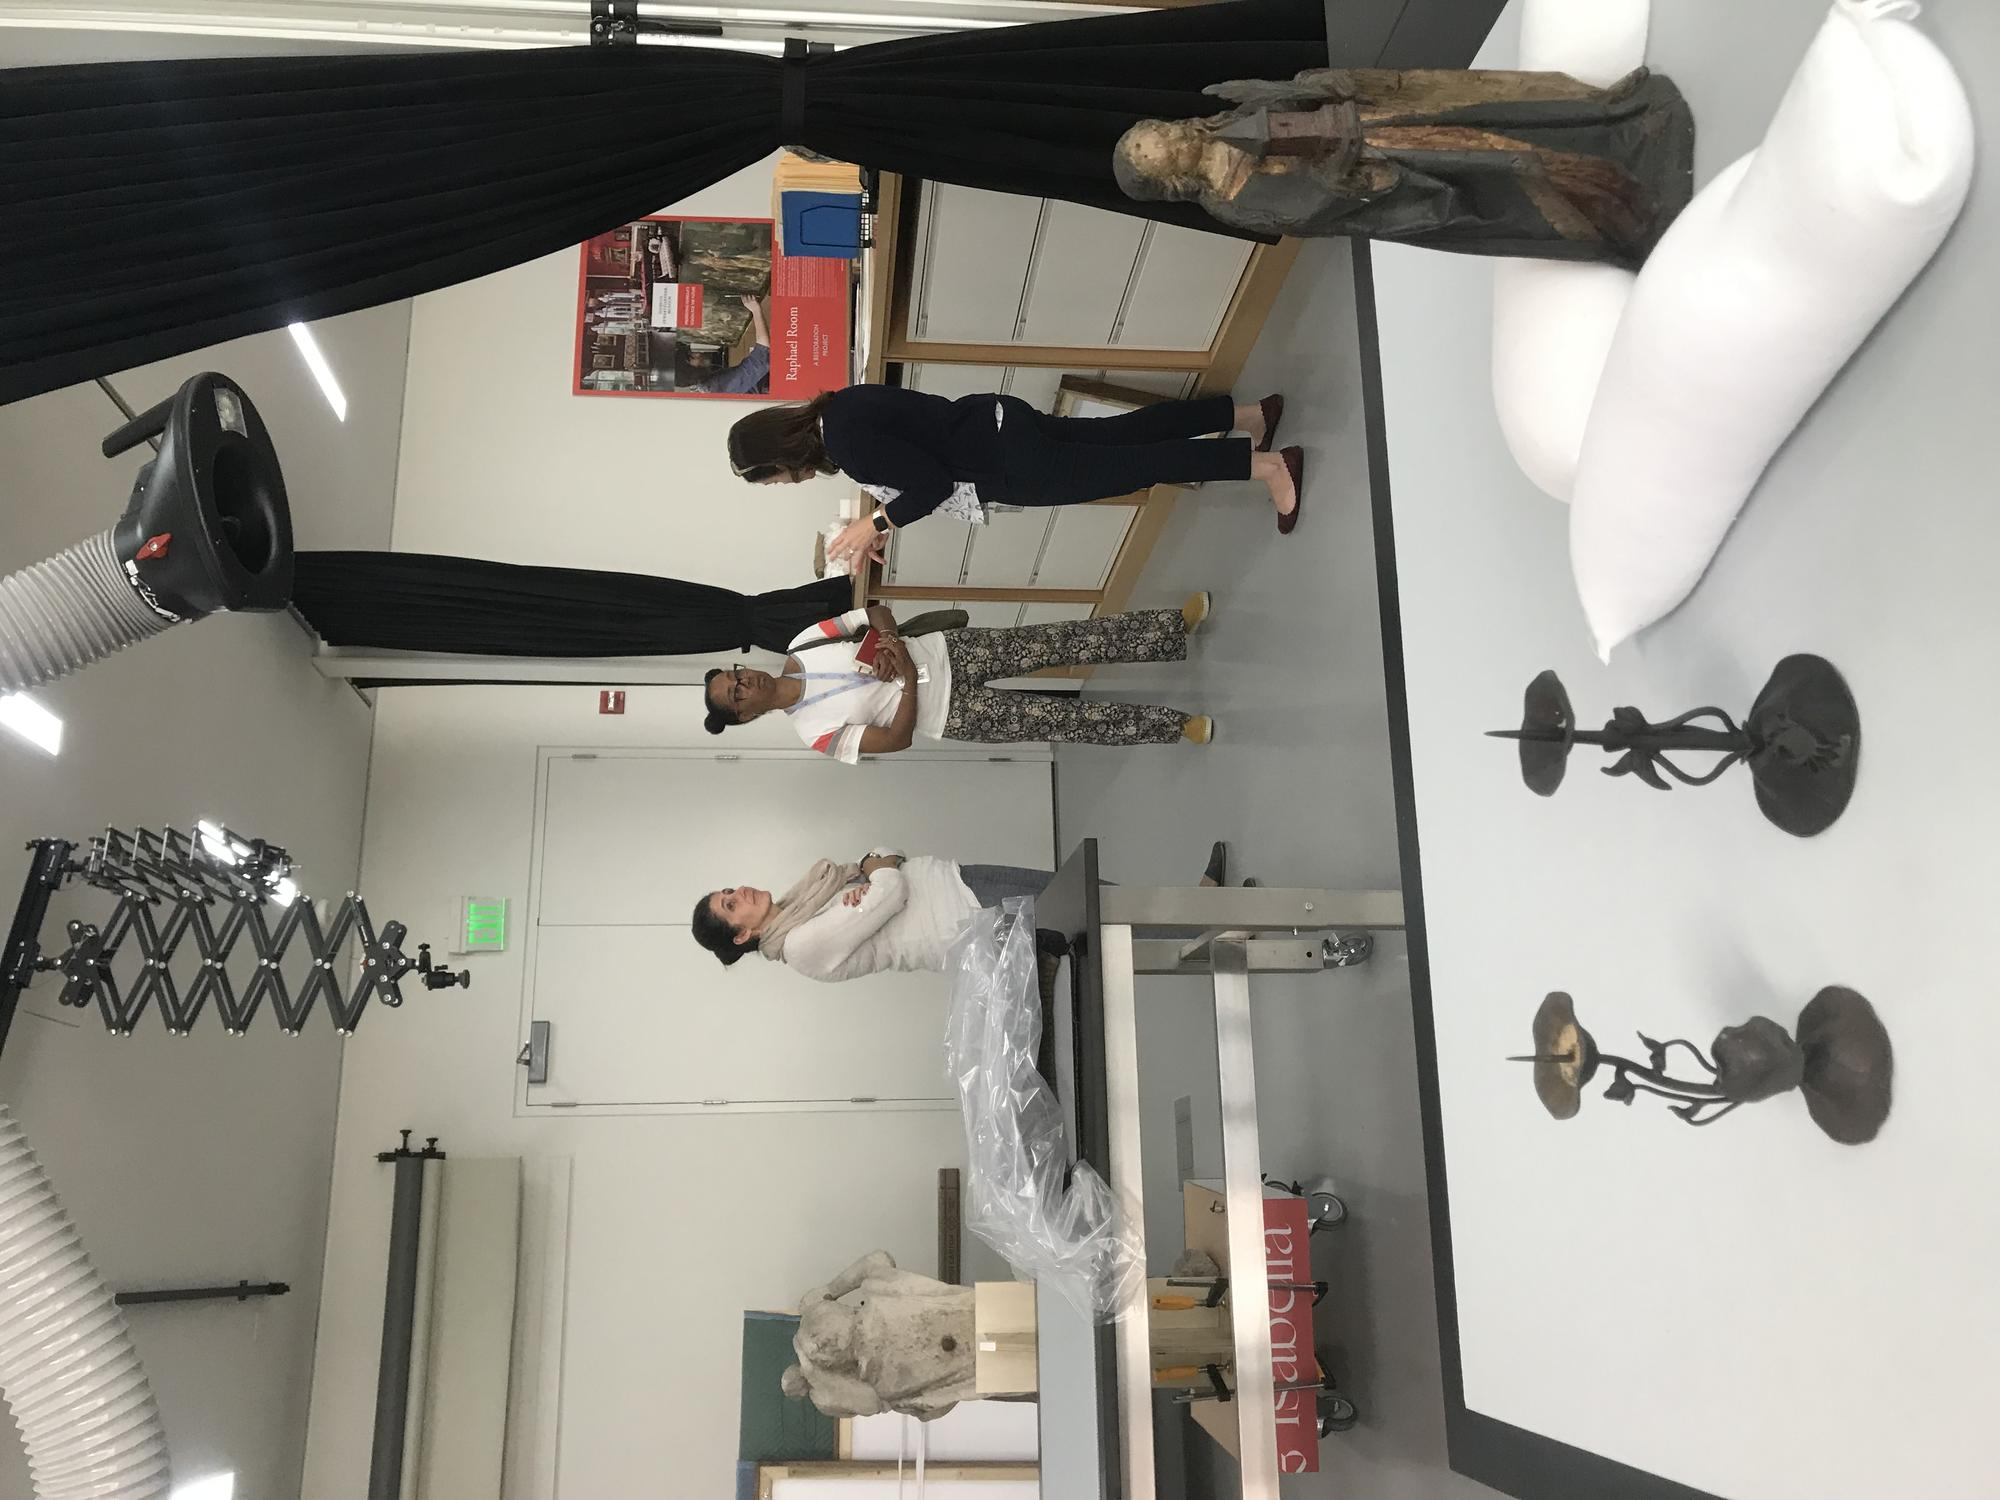 Sonya Clark visits the Object Conservation lab, 2019